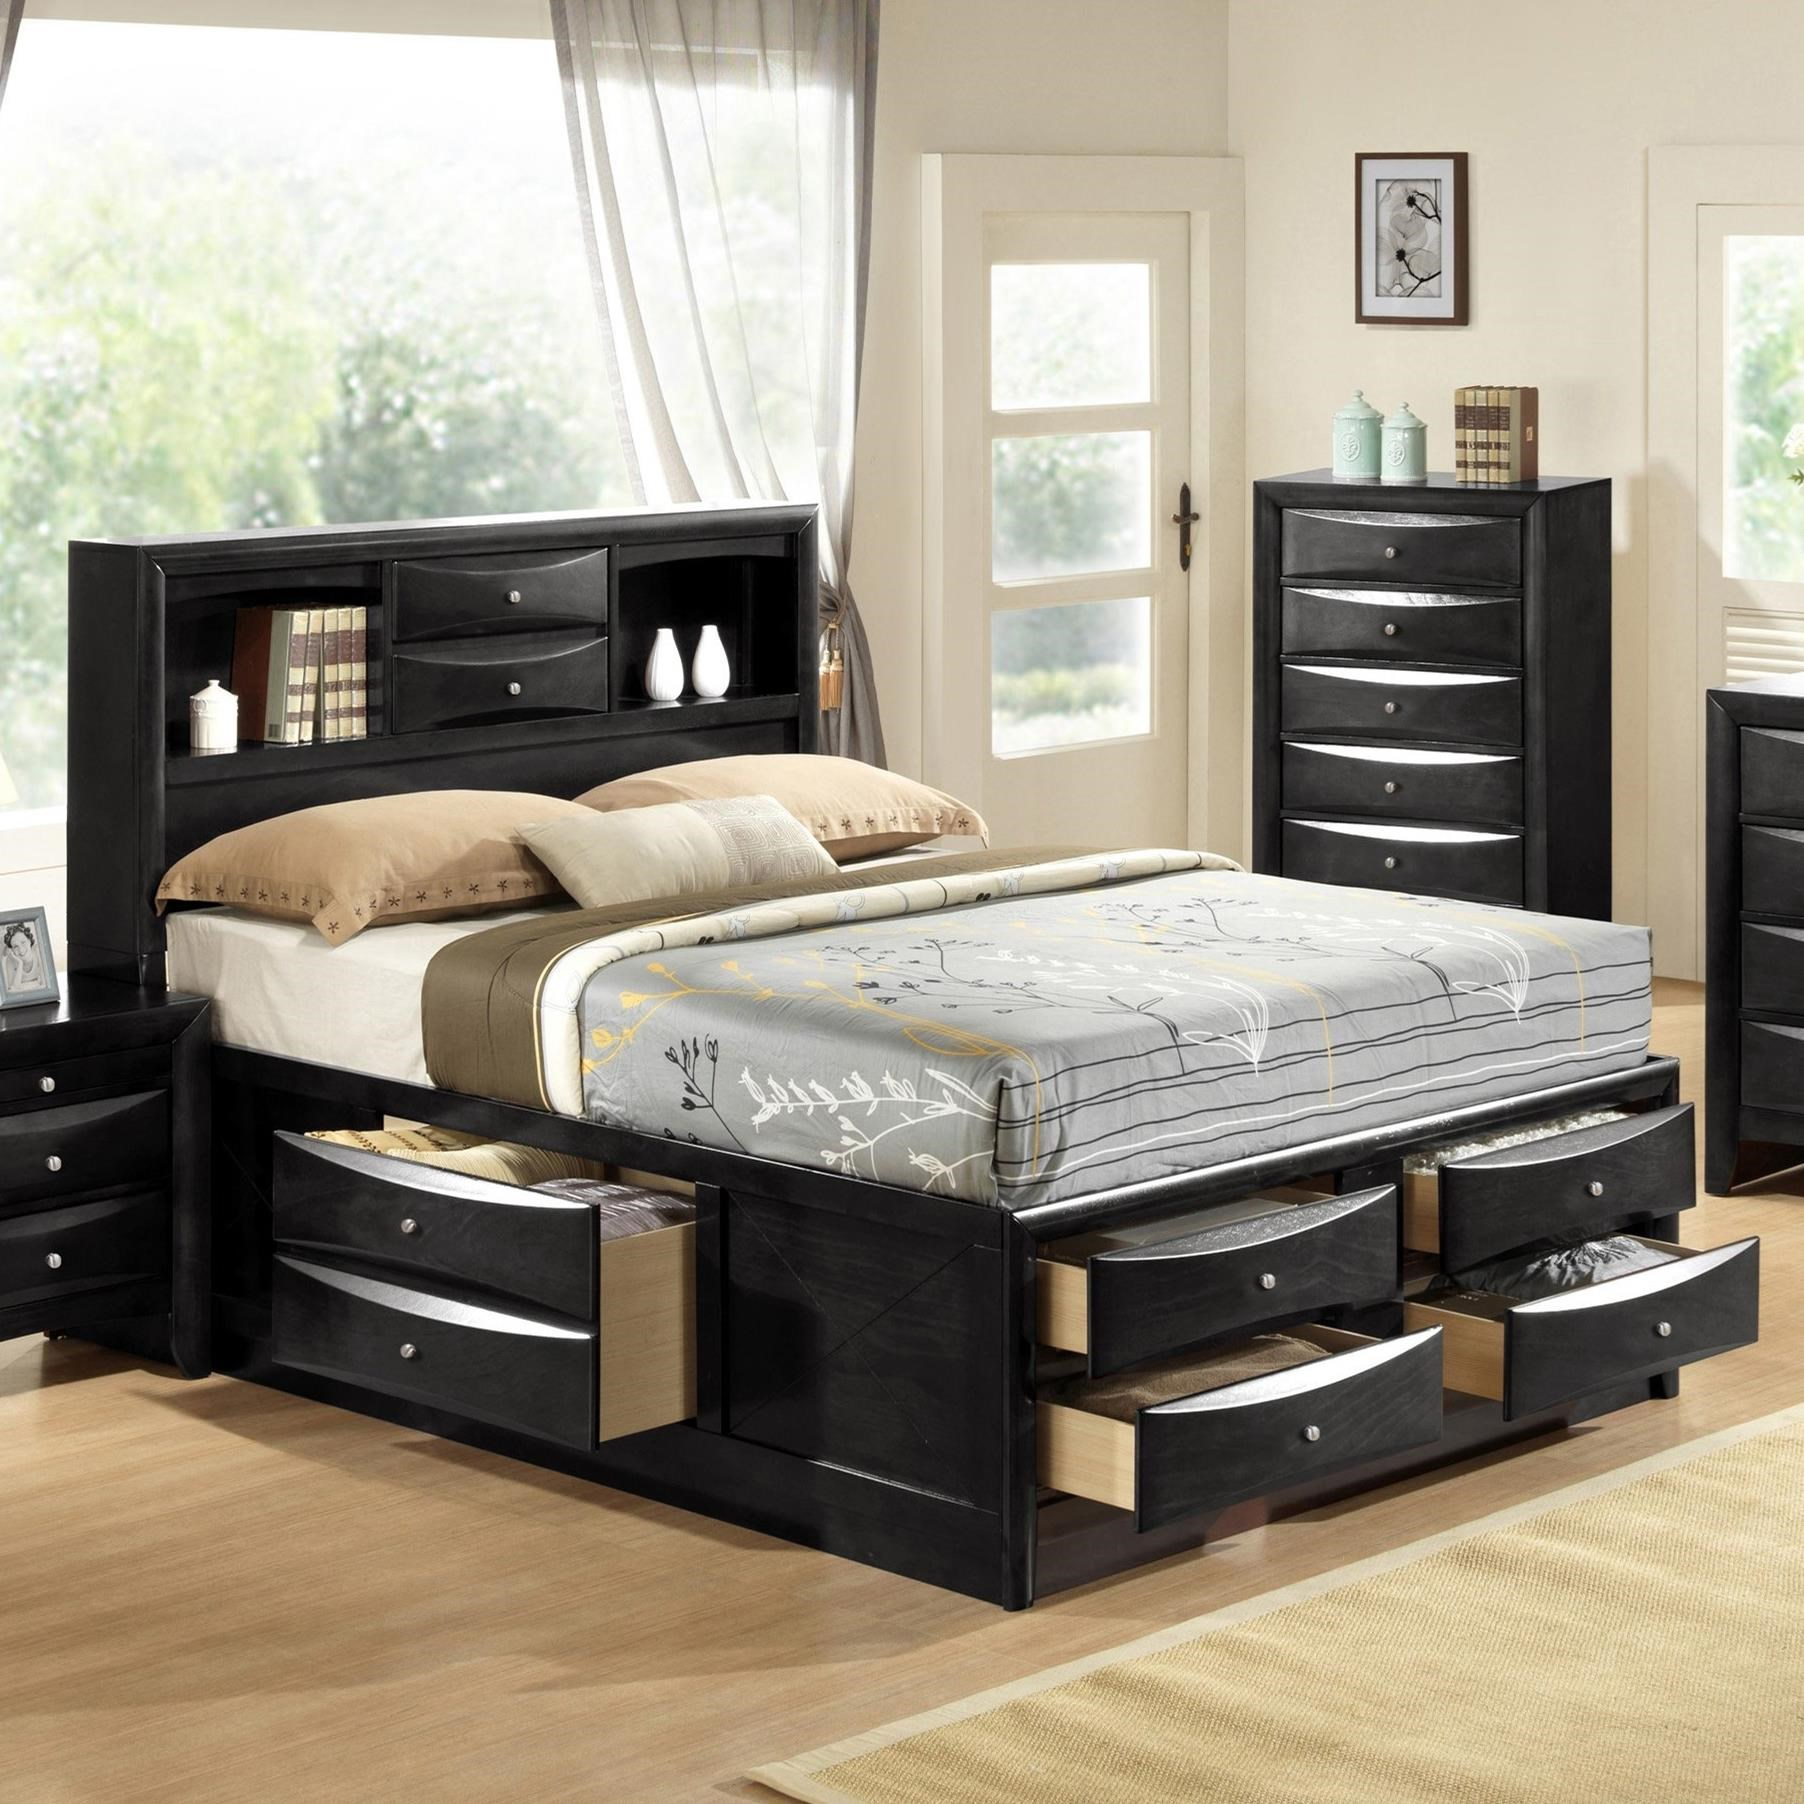 Emily King Captain's Bed by Crown Mark at Northeast Factory Direct